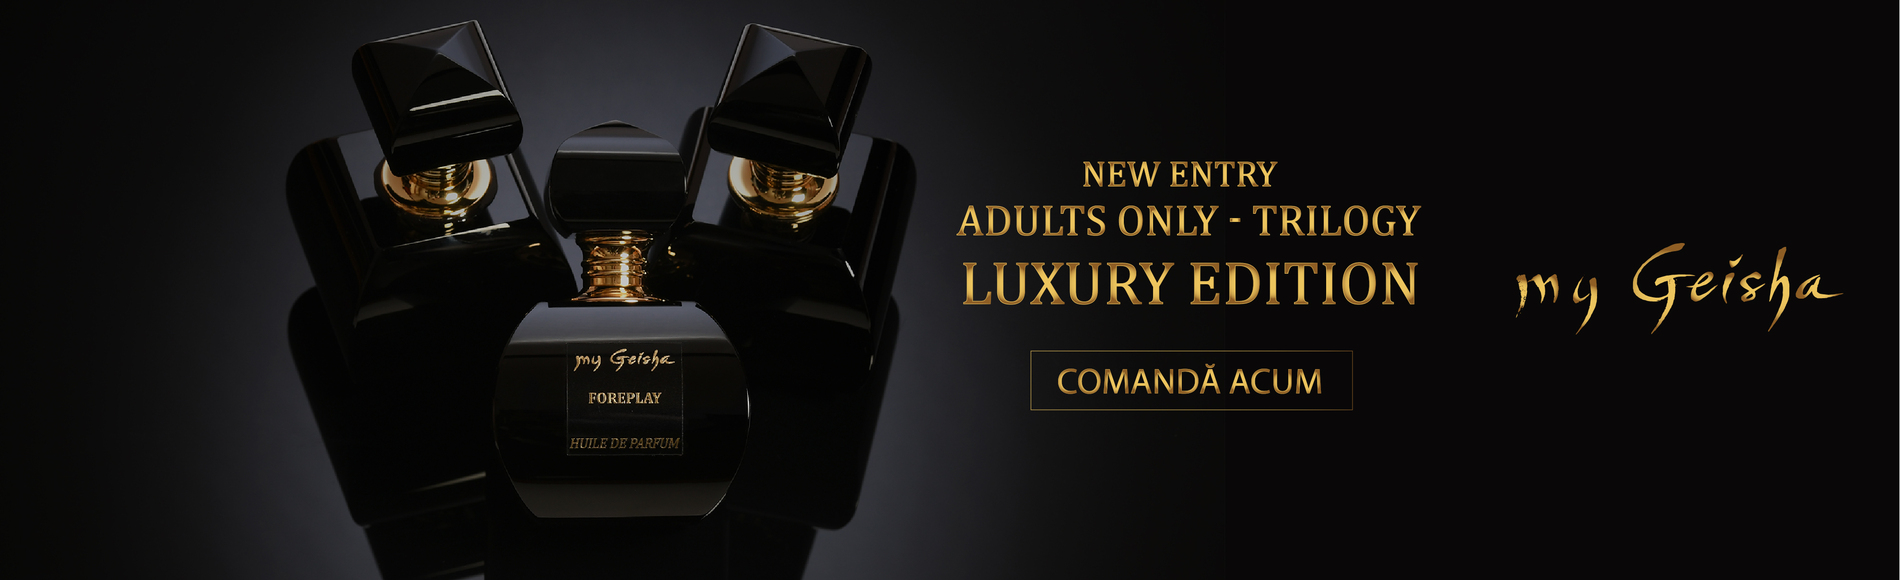 Luxury Adults only